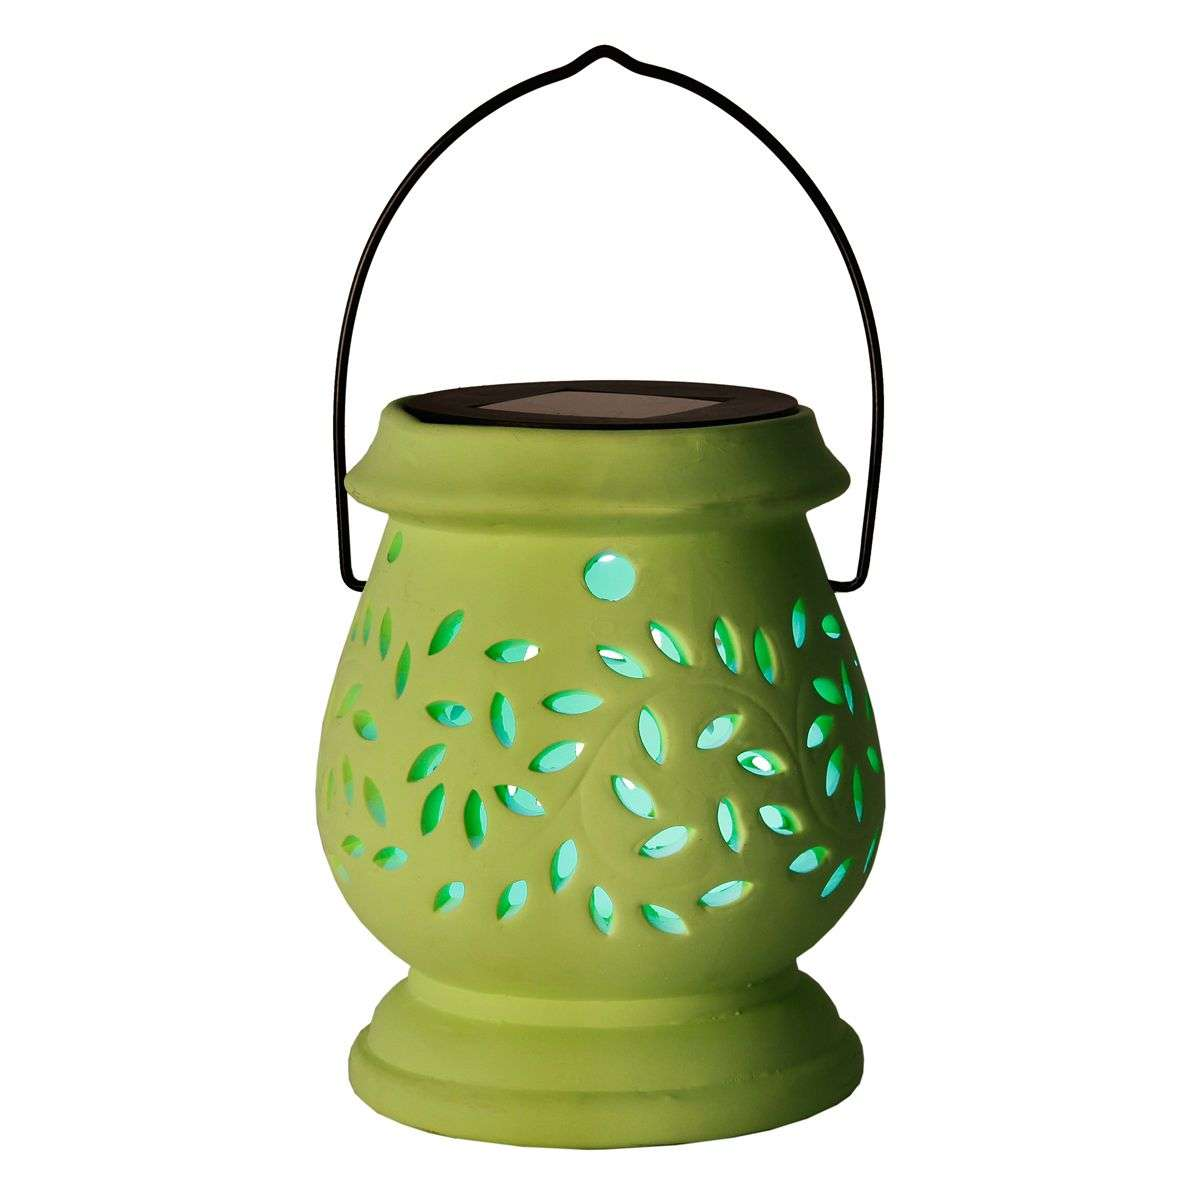 Photophore LED solaire vert Clay Lantern-1522714-31